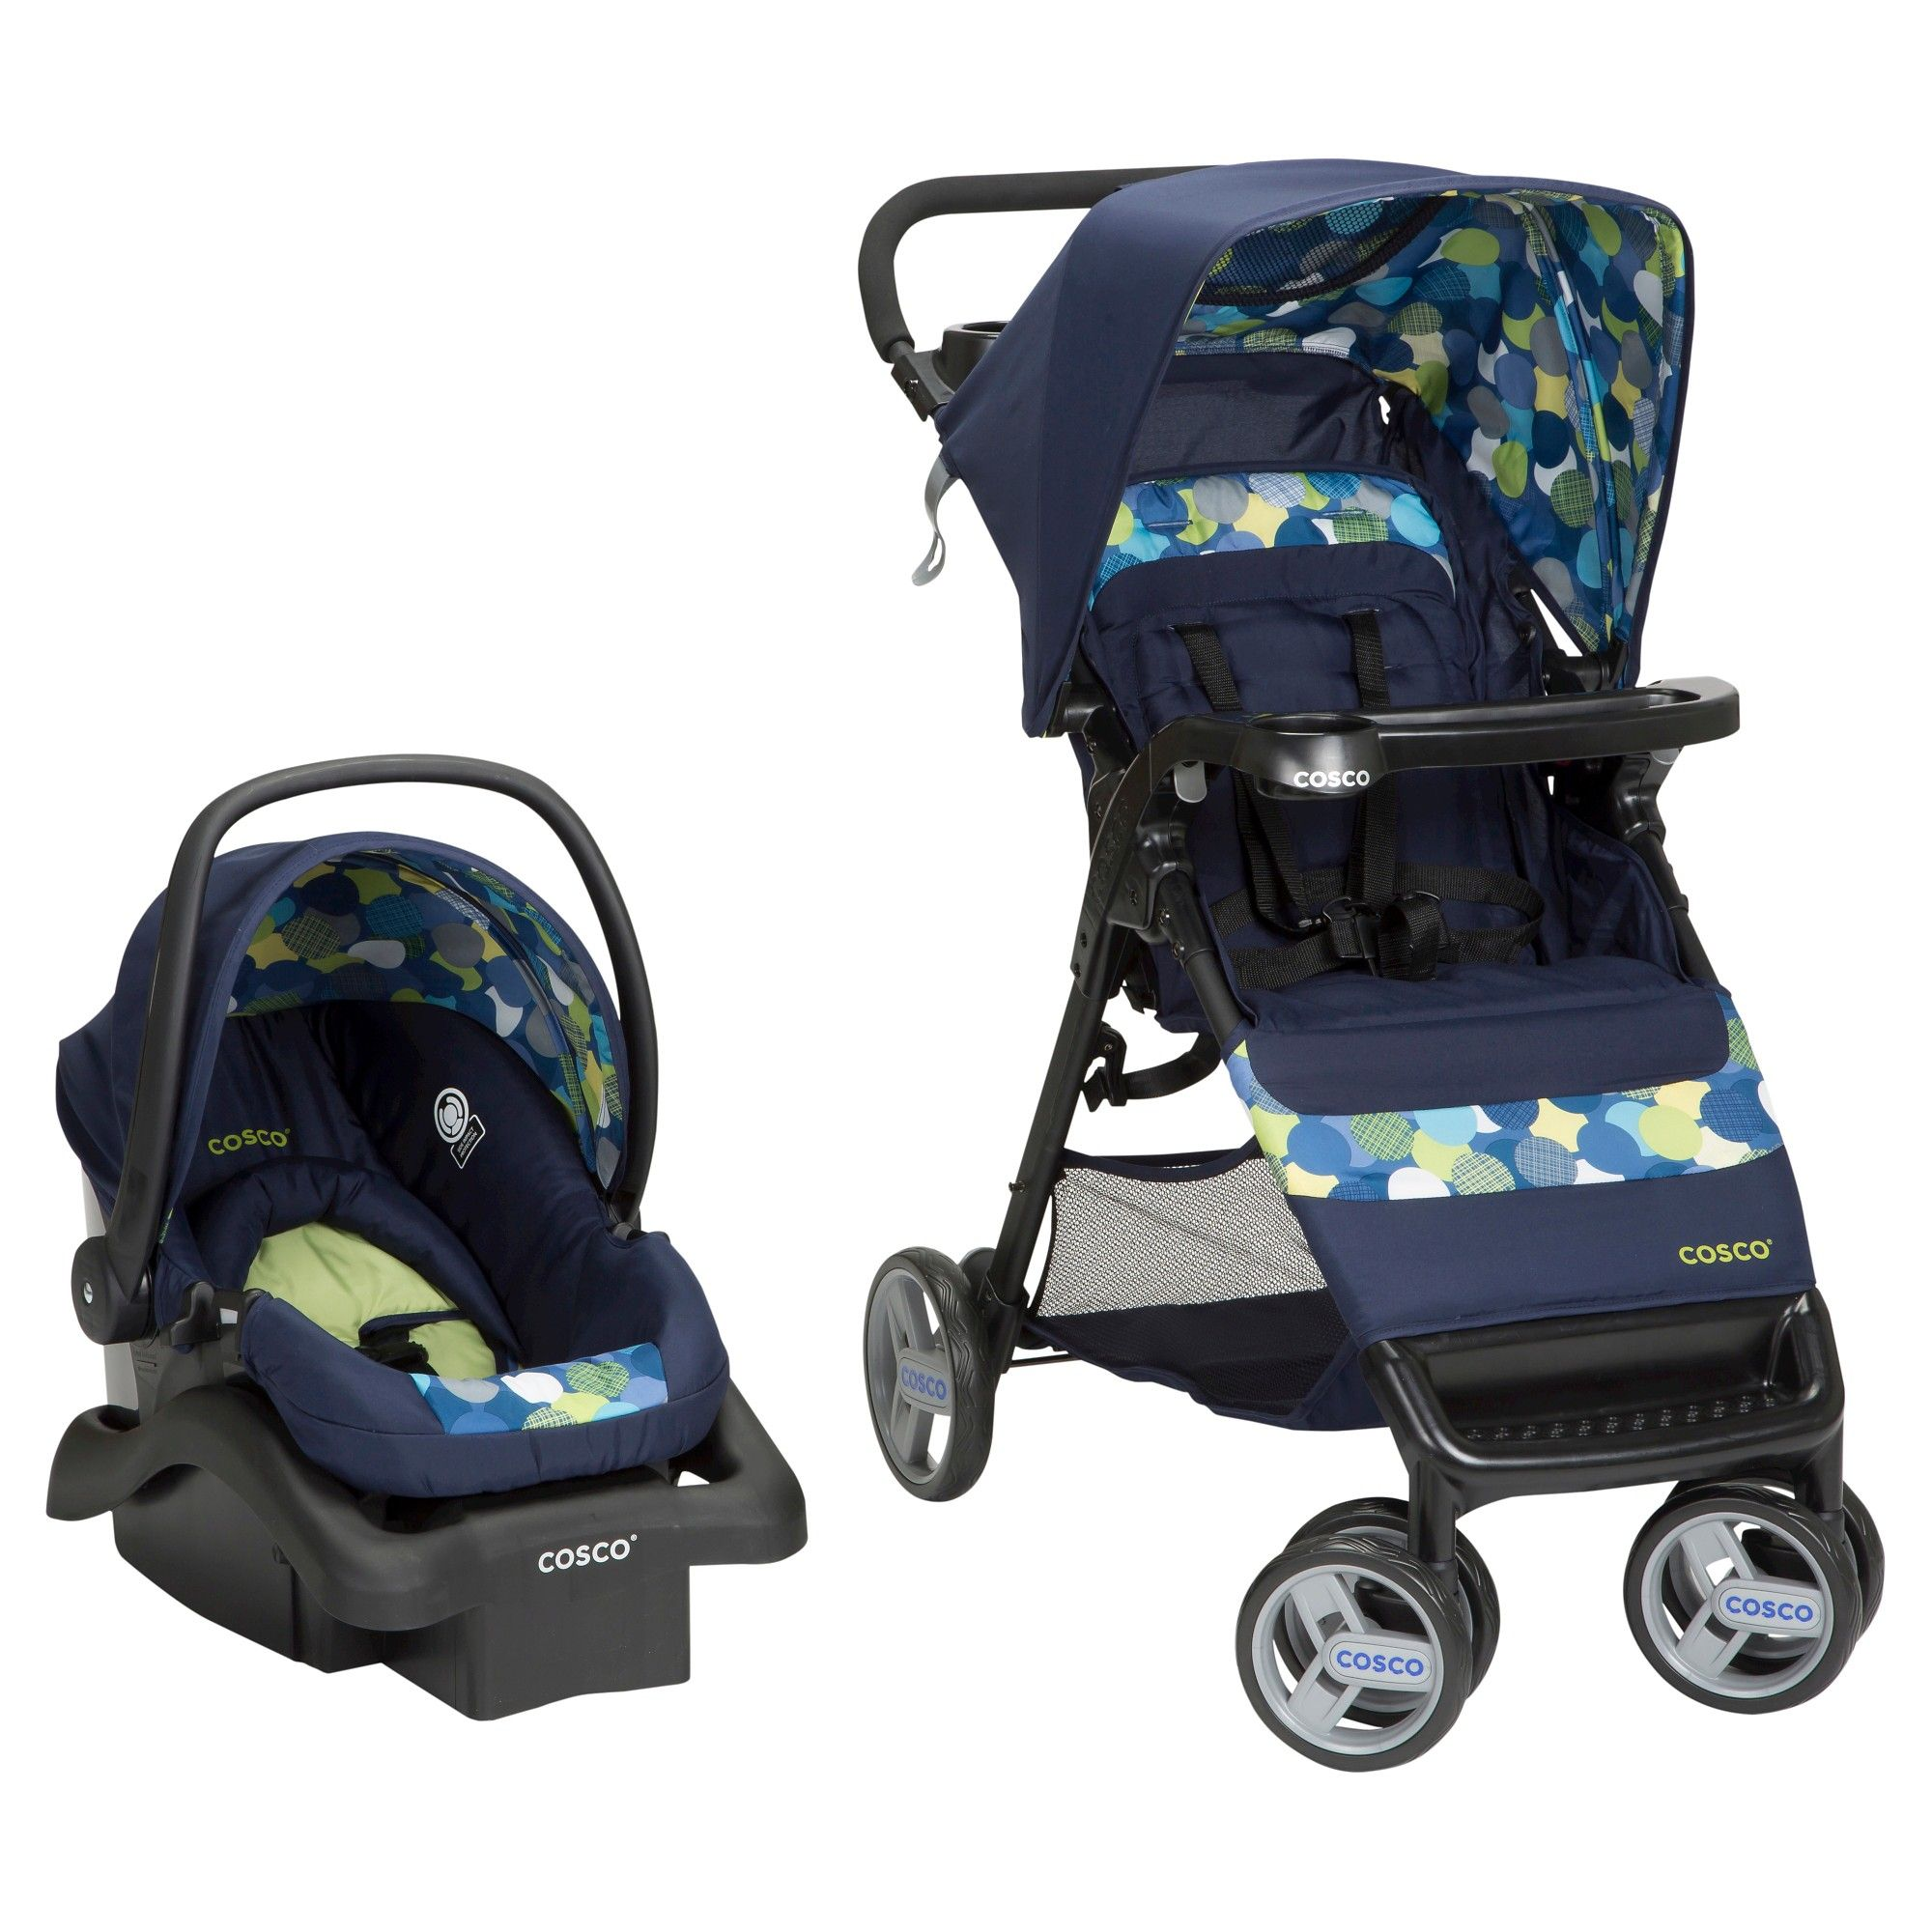 Cosco Simple Fold Travel System in Comet Travel system